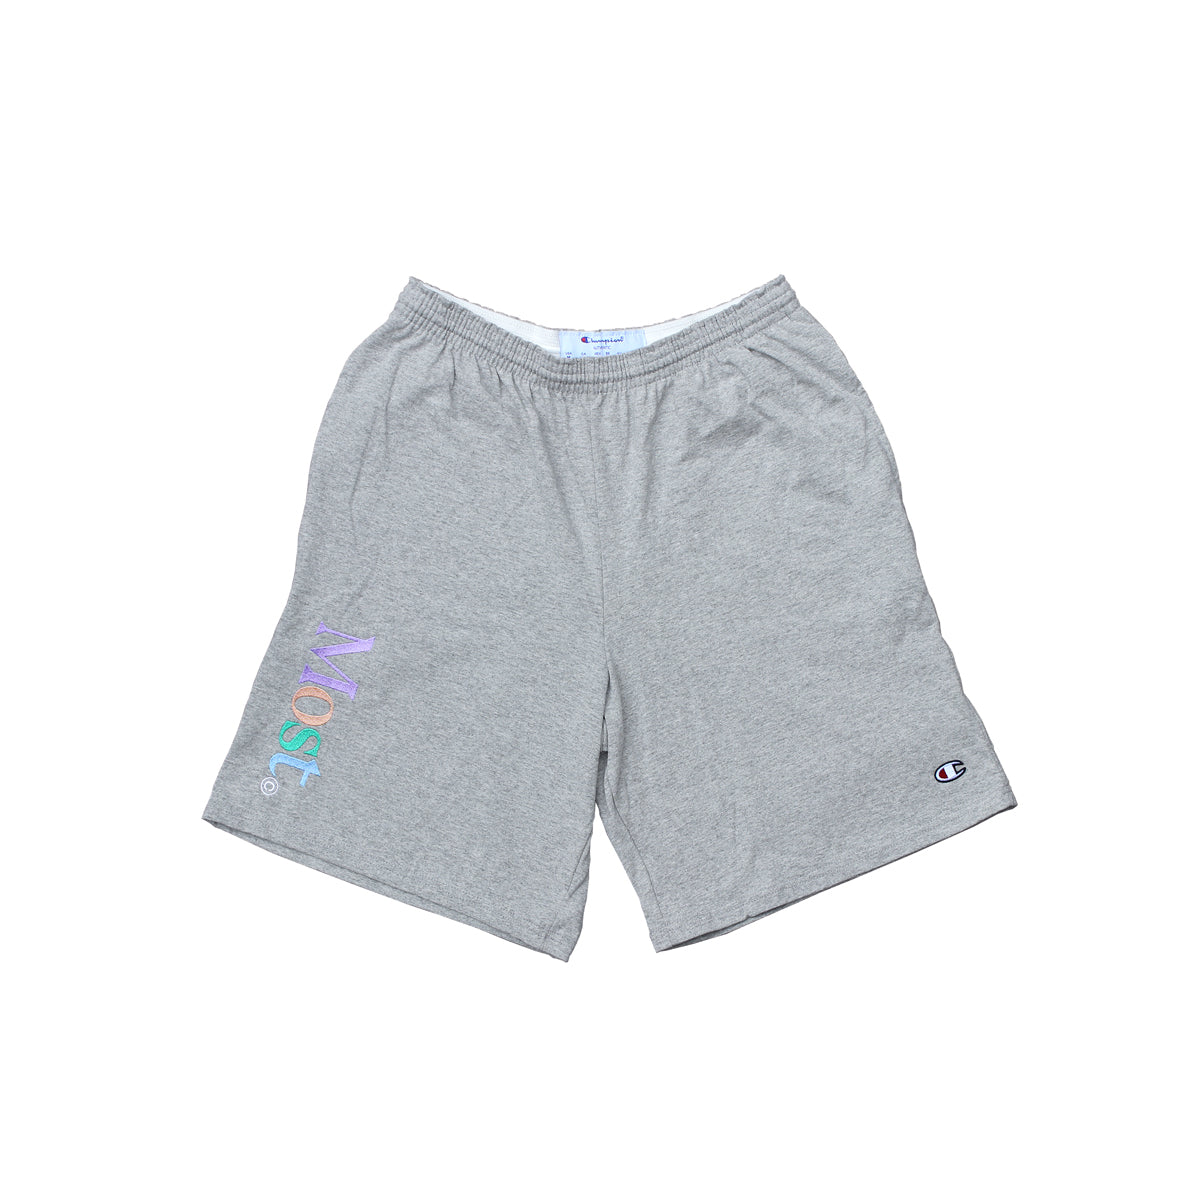 Multi Serif Sweatshort - Grey